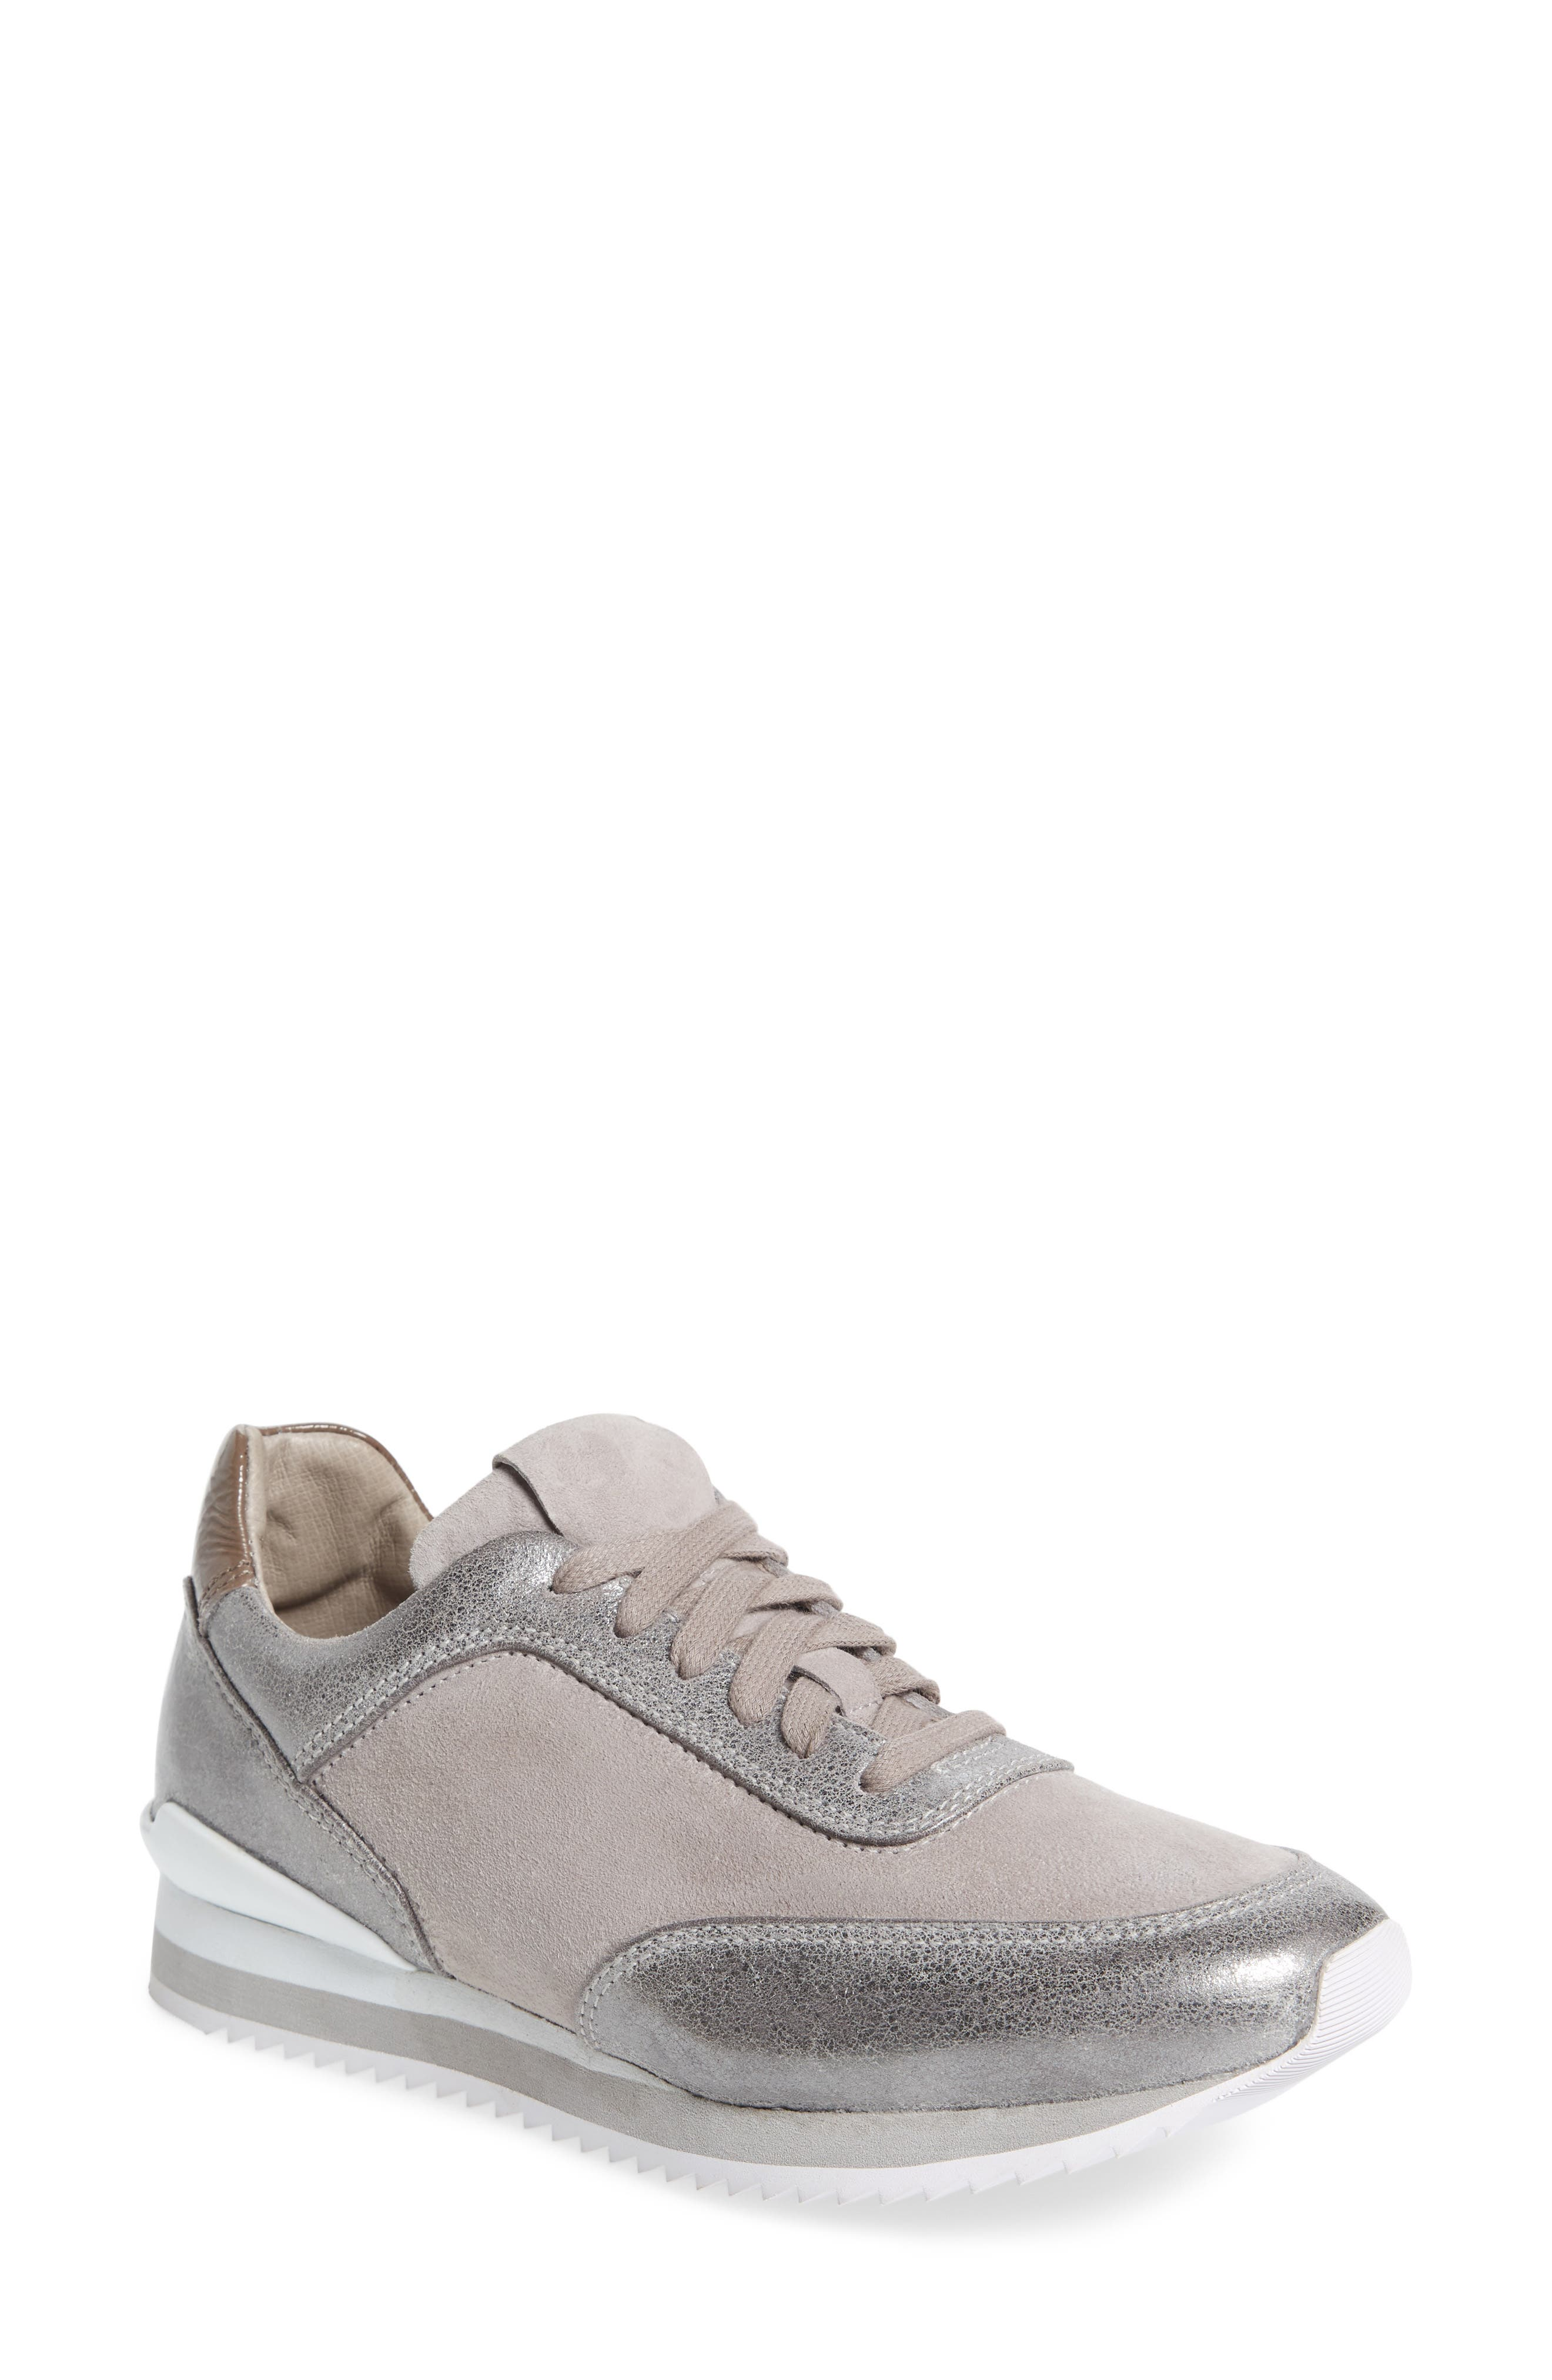 Jules Sneaker,                         Main,                         color, Pewter Leather/ Suede